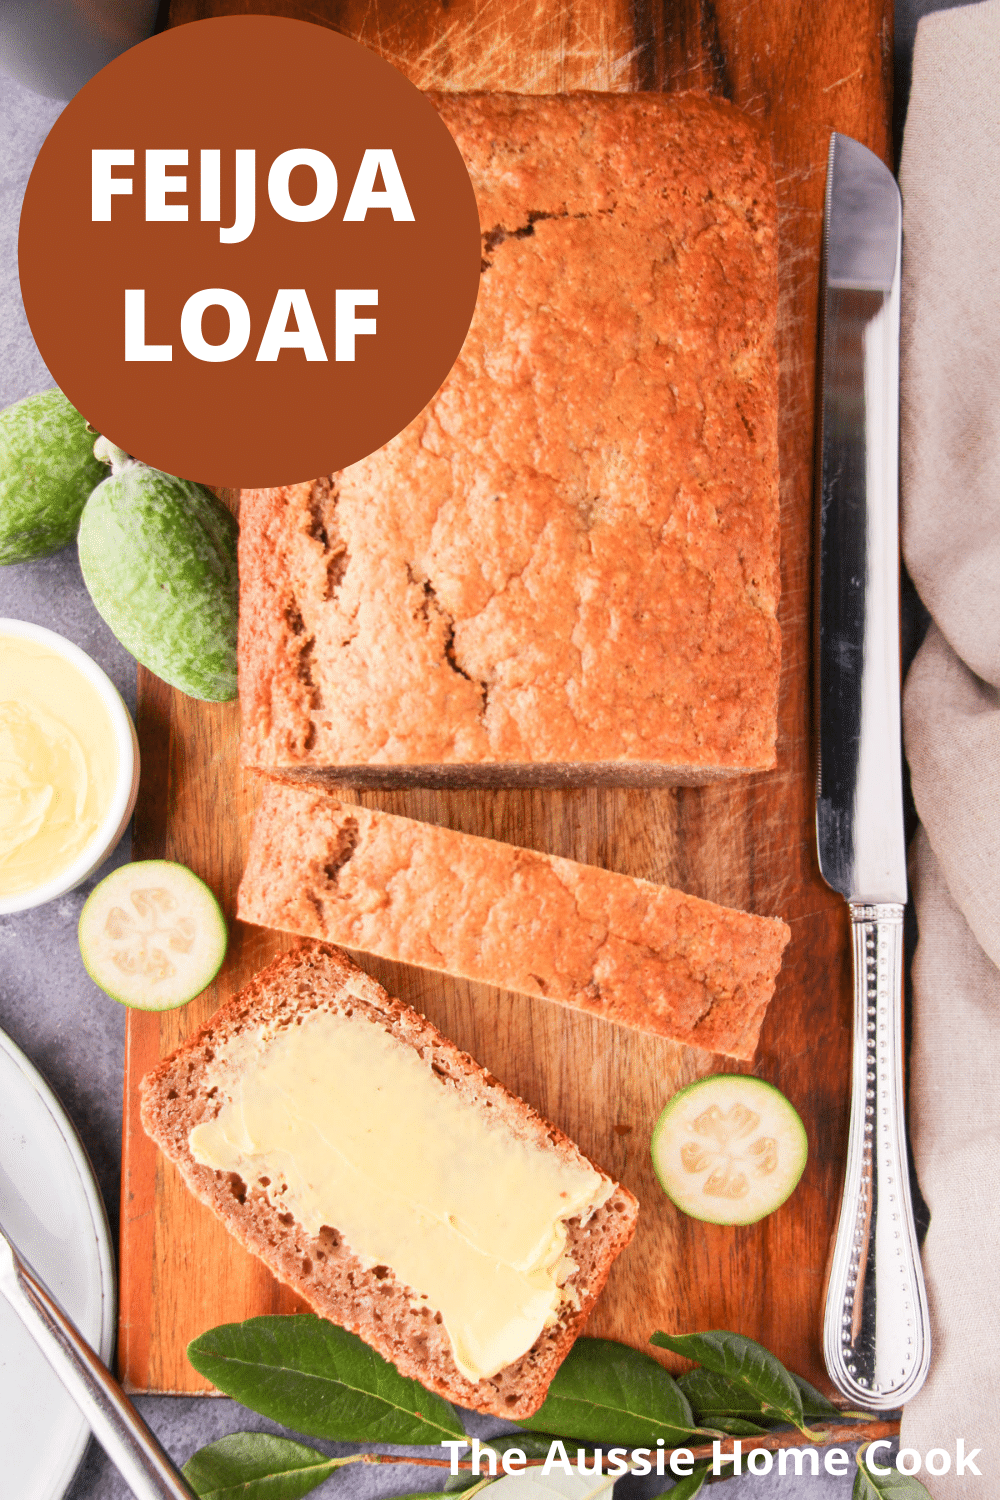 Sliced feijoa loaf on a chopping board, with one buttered slice, fresh feijoas and leaves, large cutting knife, butter and plate and knife on the side, with text overlay, feijoa loaf and The Aussie Home Cook.